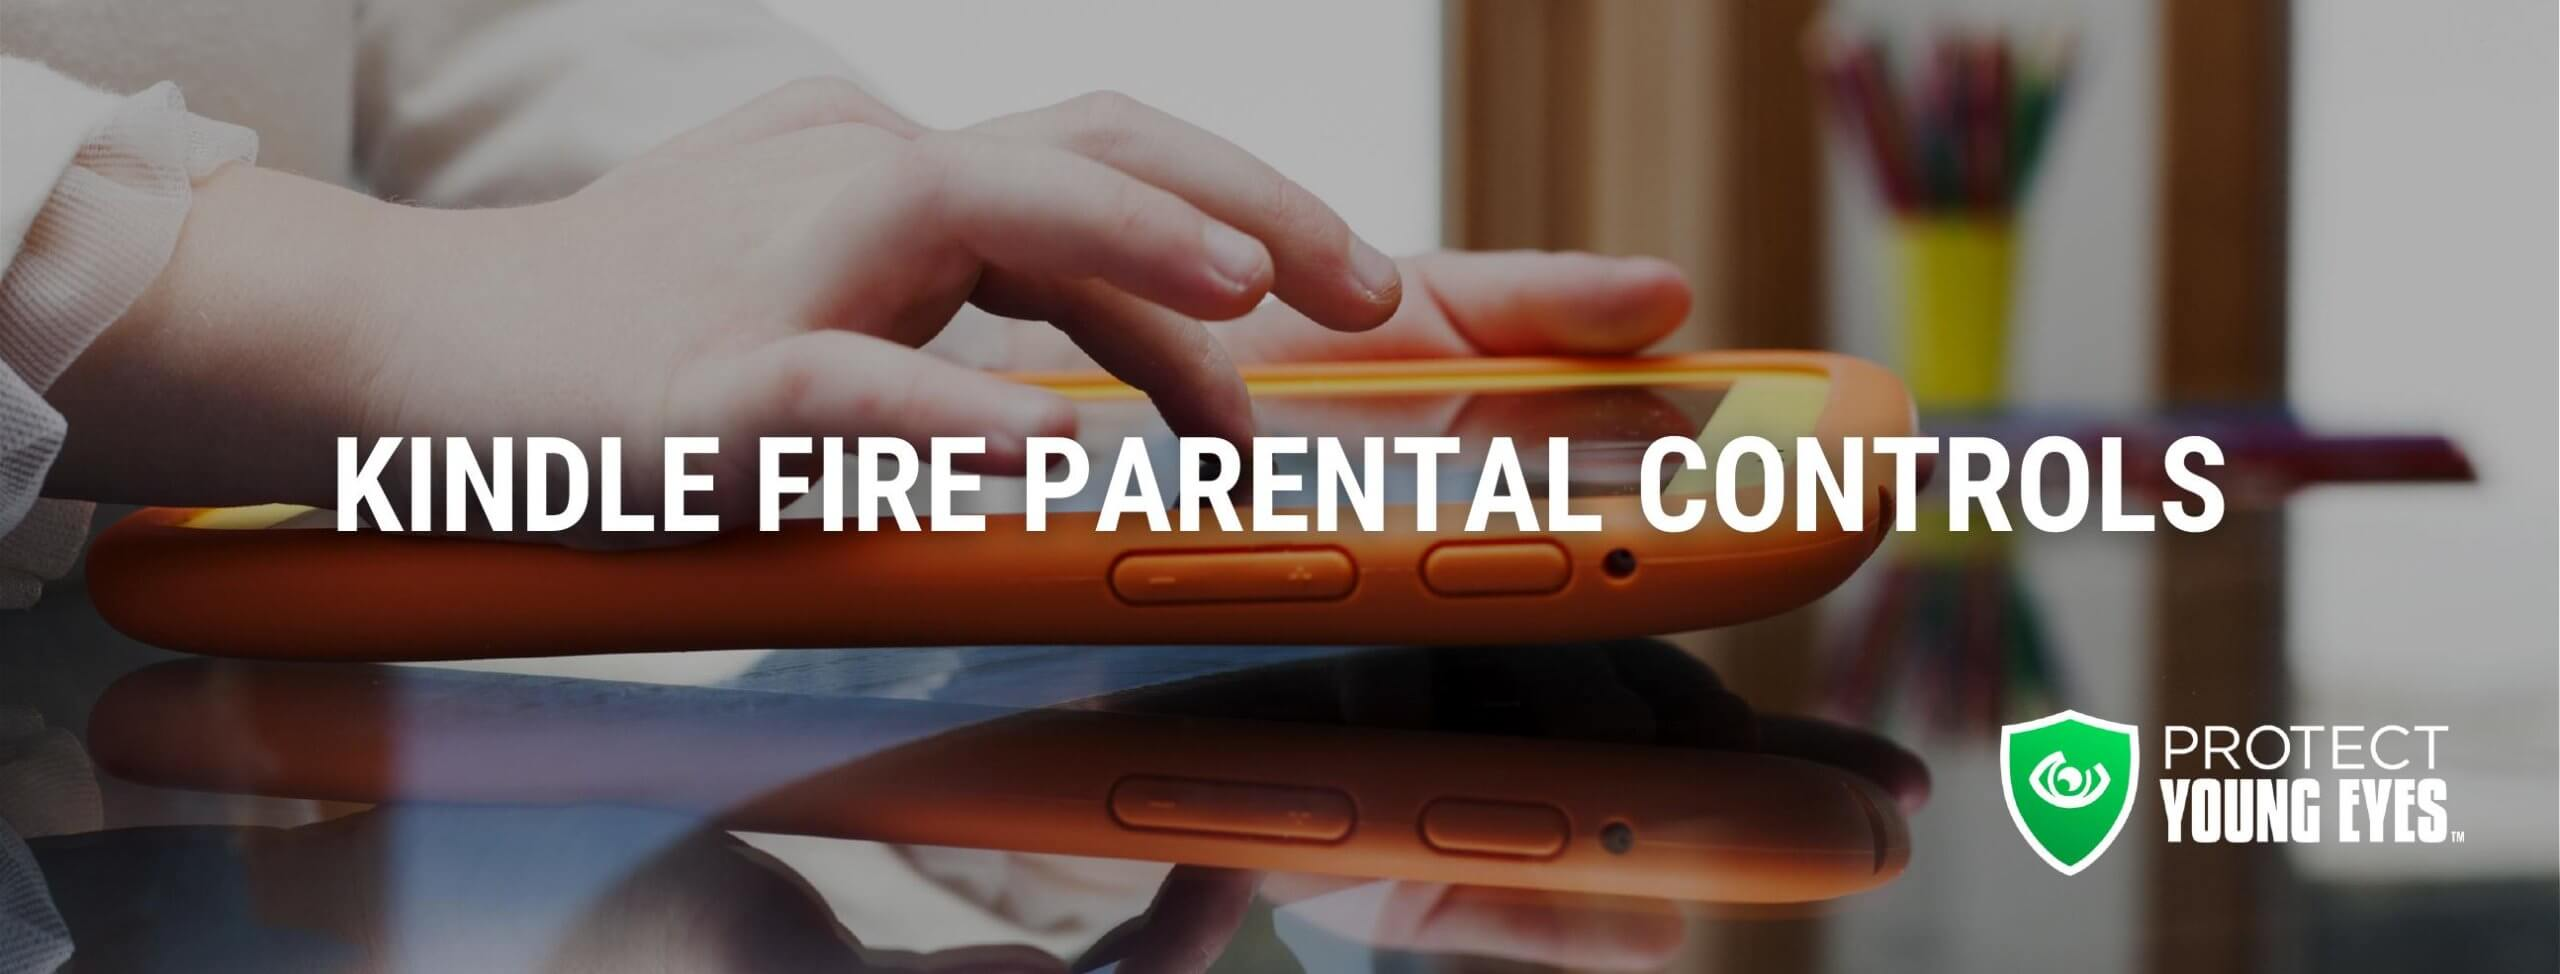 Kindle Fire Parental Controls PYE